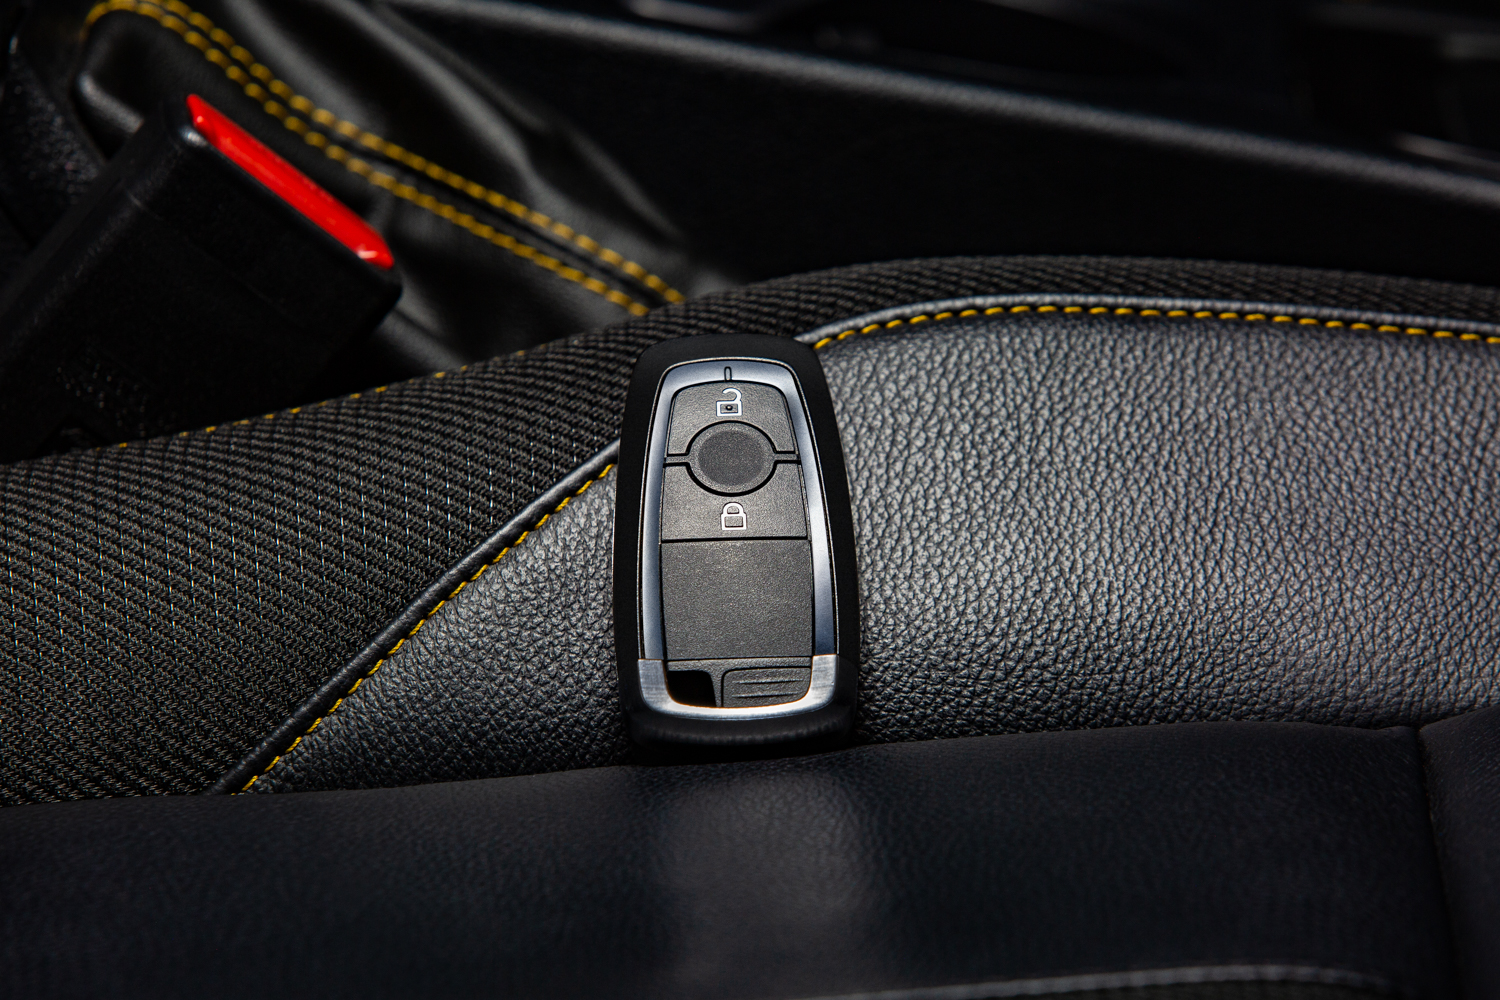 Car Key on the seat